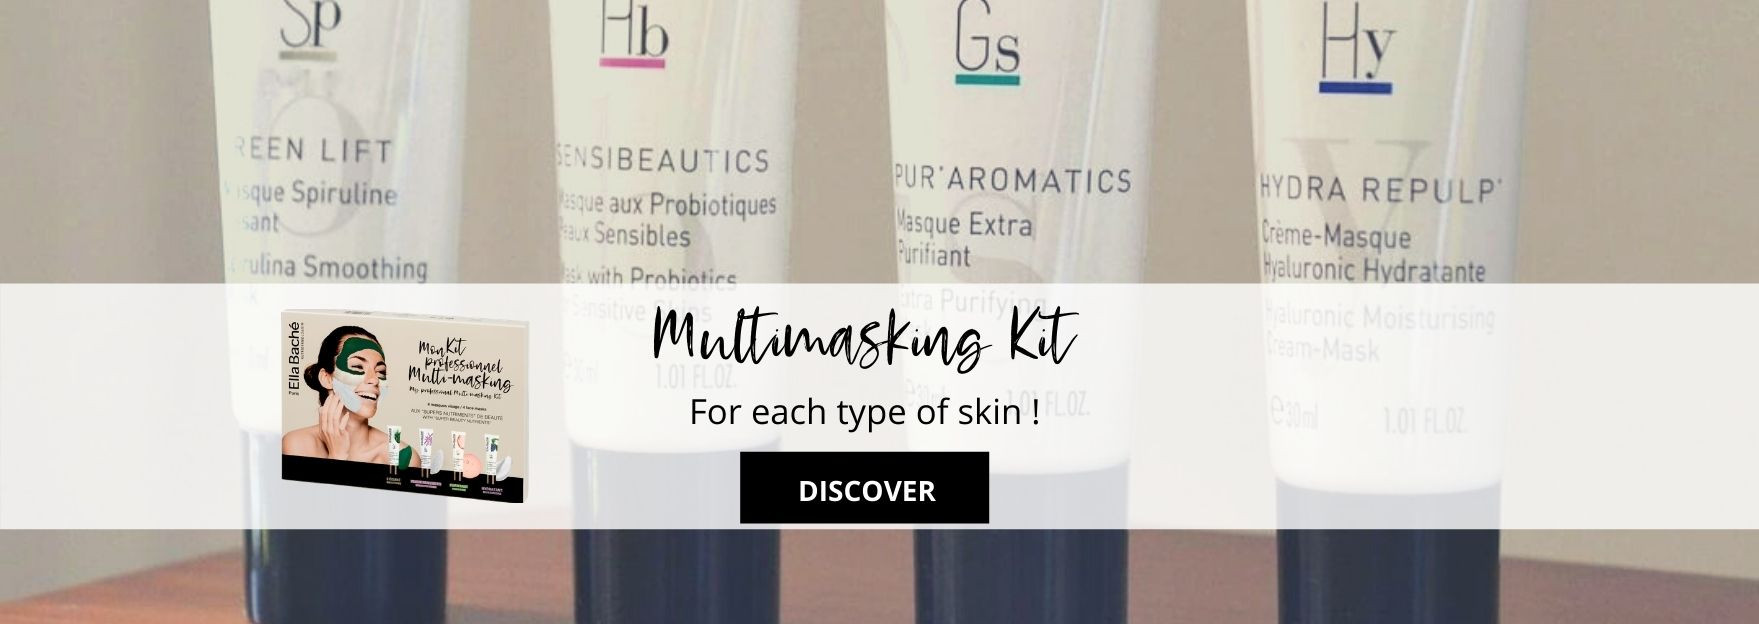 Multimasking kit